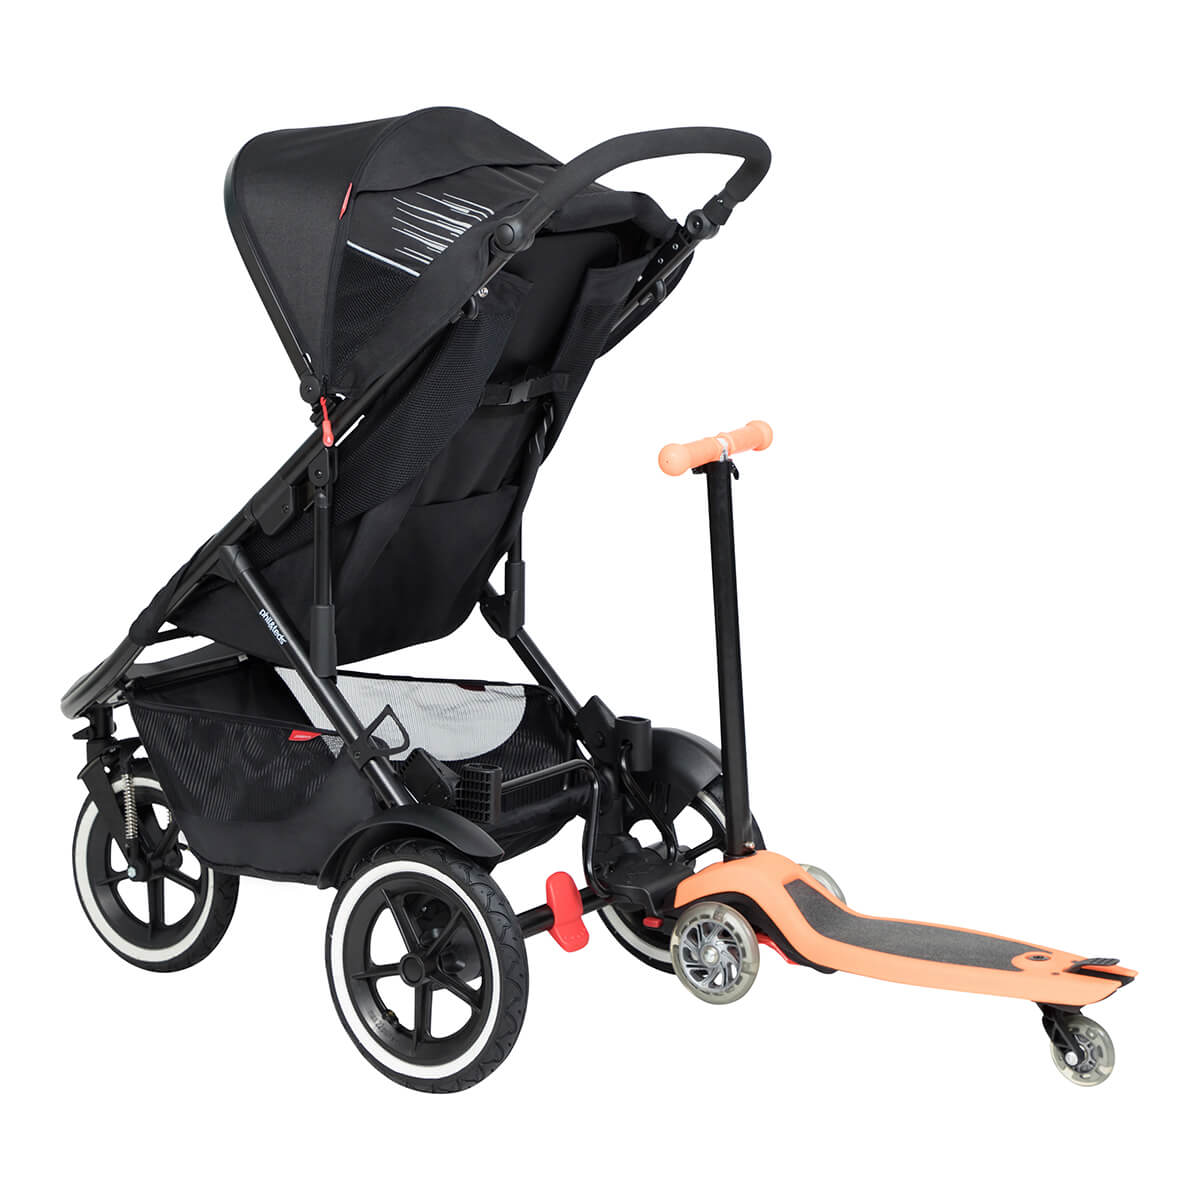 https://cdn.accentuate.io/4343443488802/19437753860274/philteds-sport-buggy-with-freerider-stroller-board-in-rear-v1626482671808.jpg?1200x1200